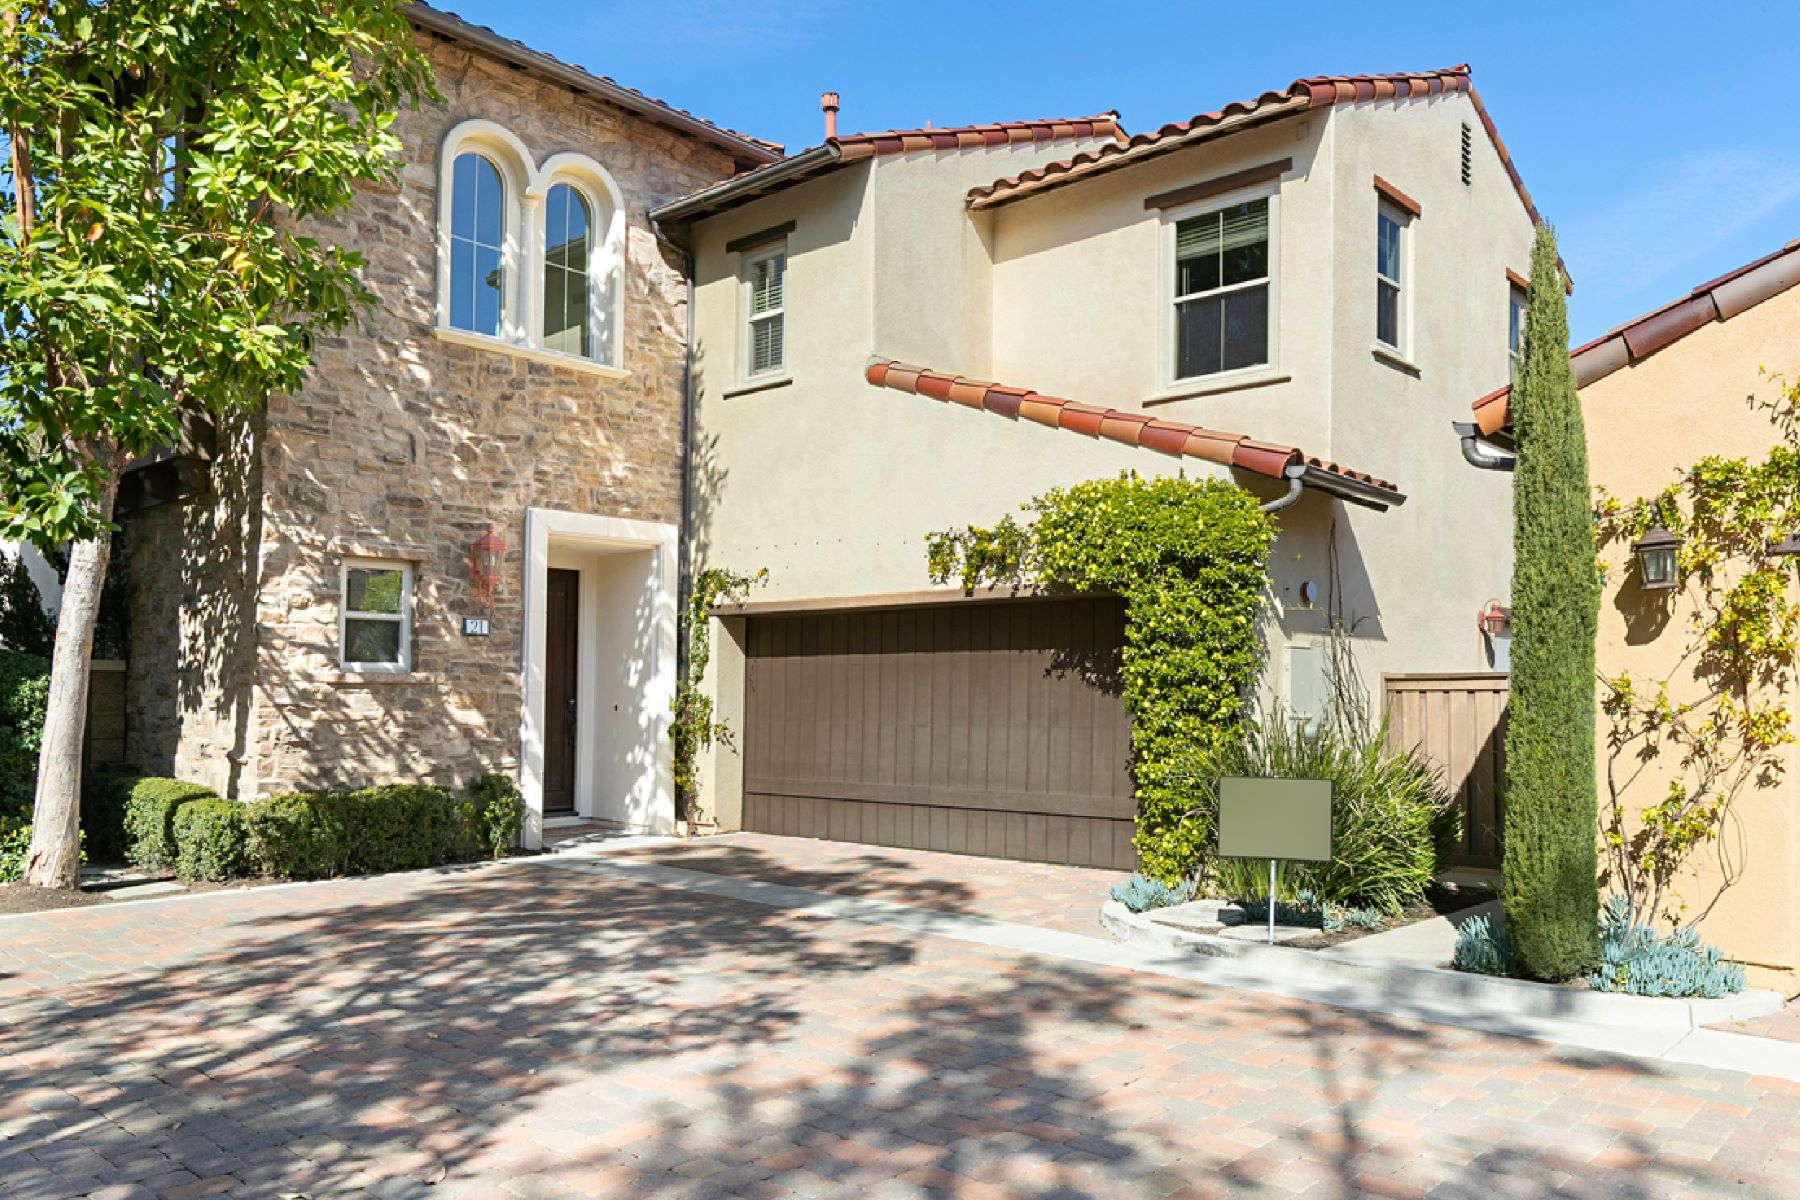 Single Family Homes for Sale at 21 Shade Tree Irvine, California 92603 United States